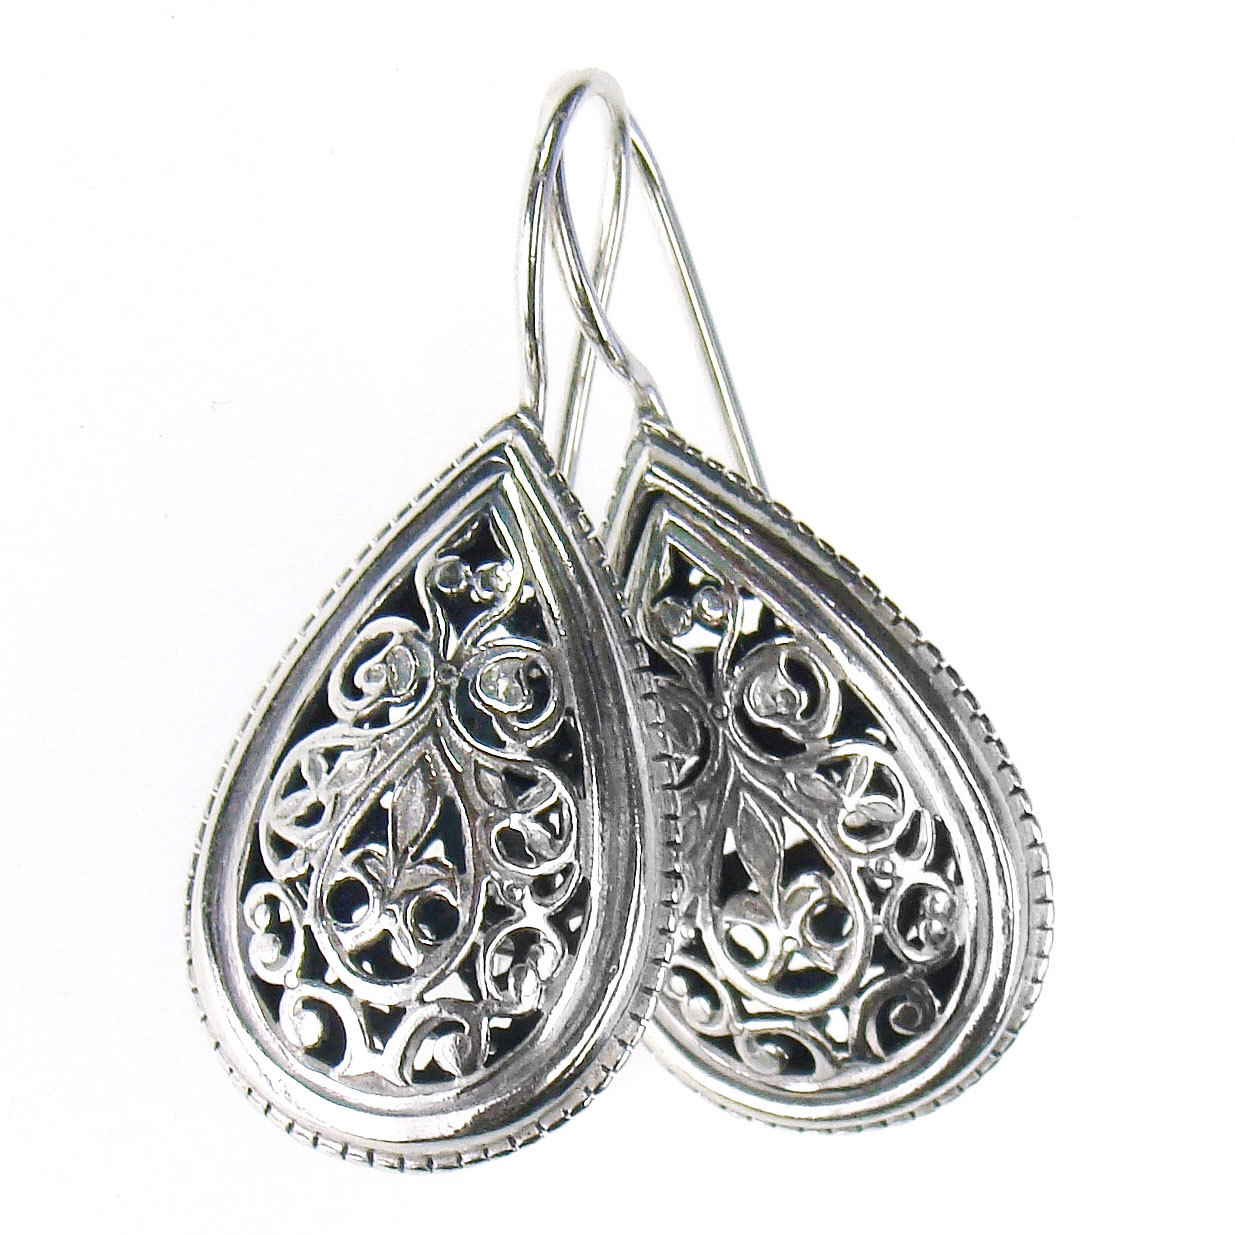 Primary image for Gerochristo 1385 - Sterling Silver -  Medieval Byzantine Filigree Earrings